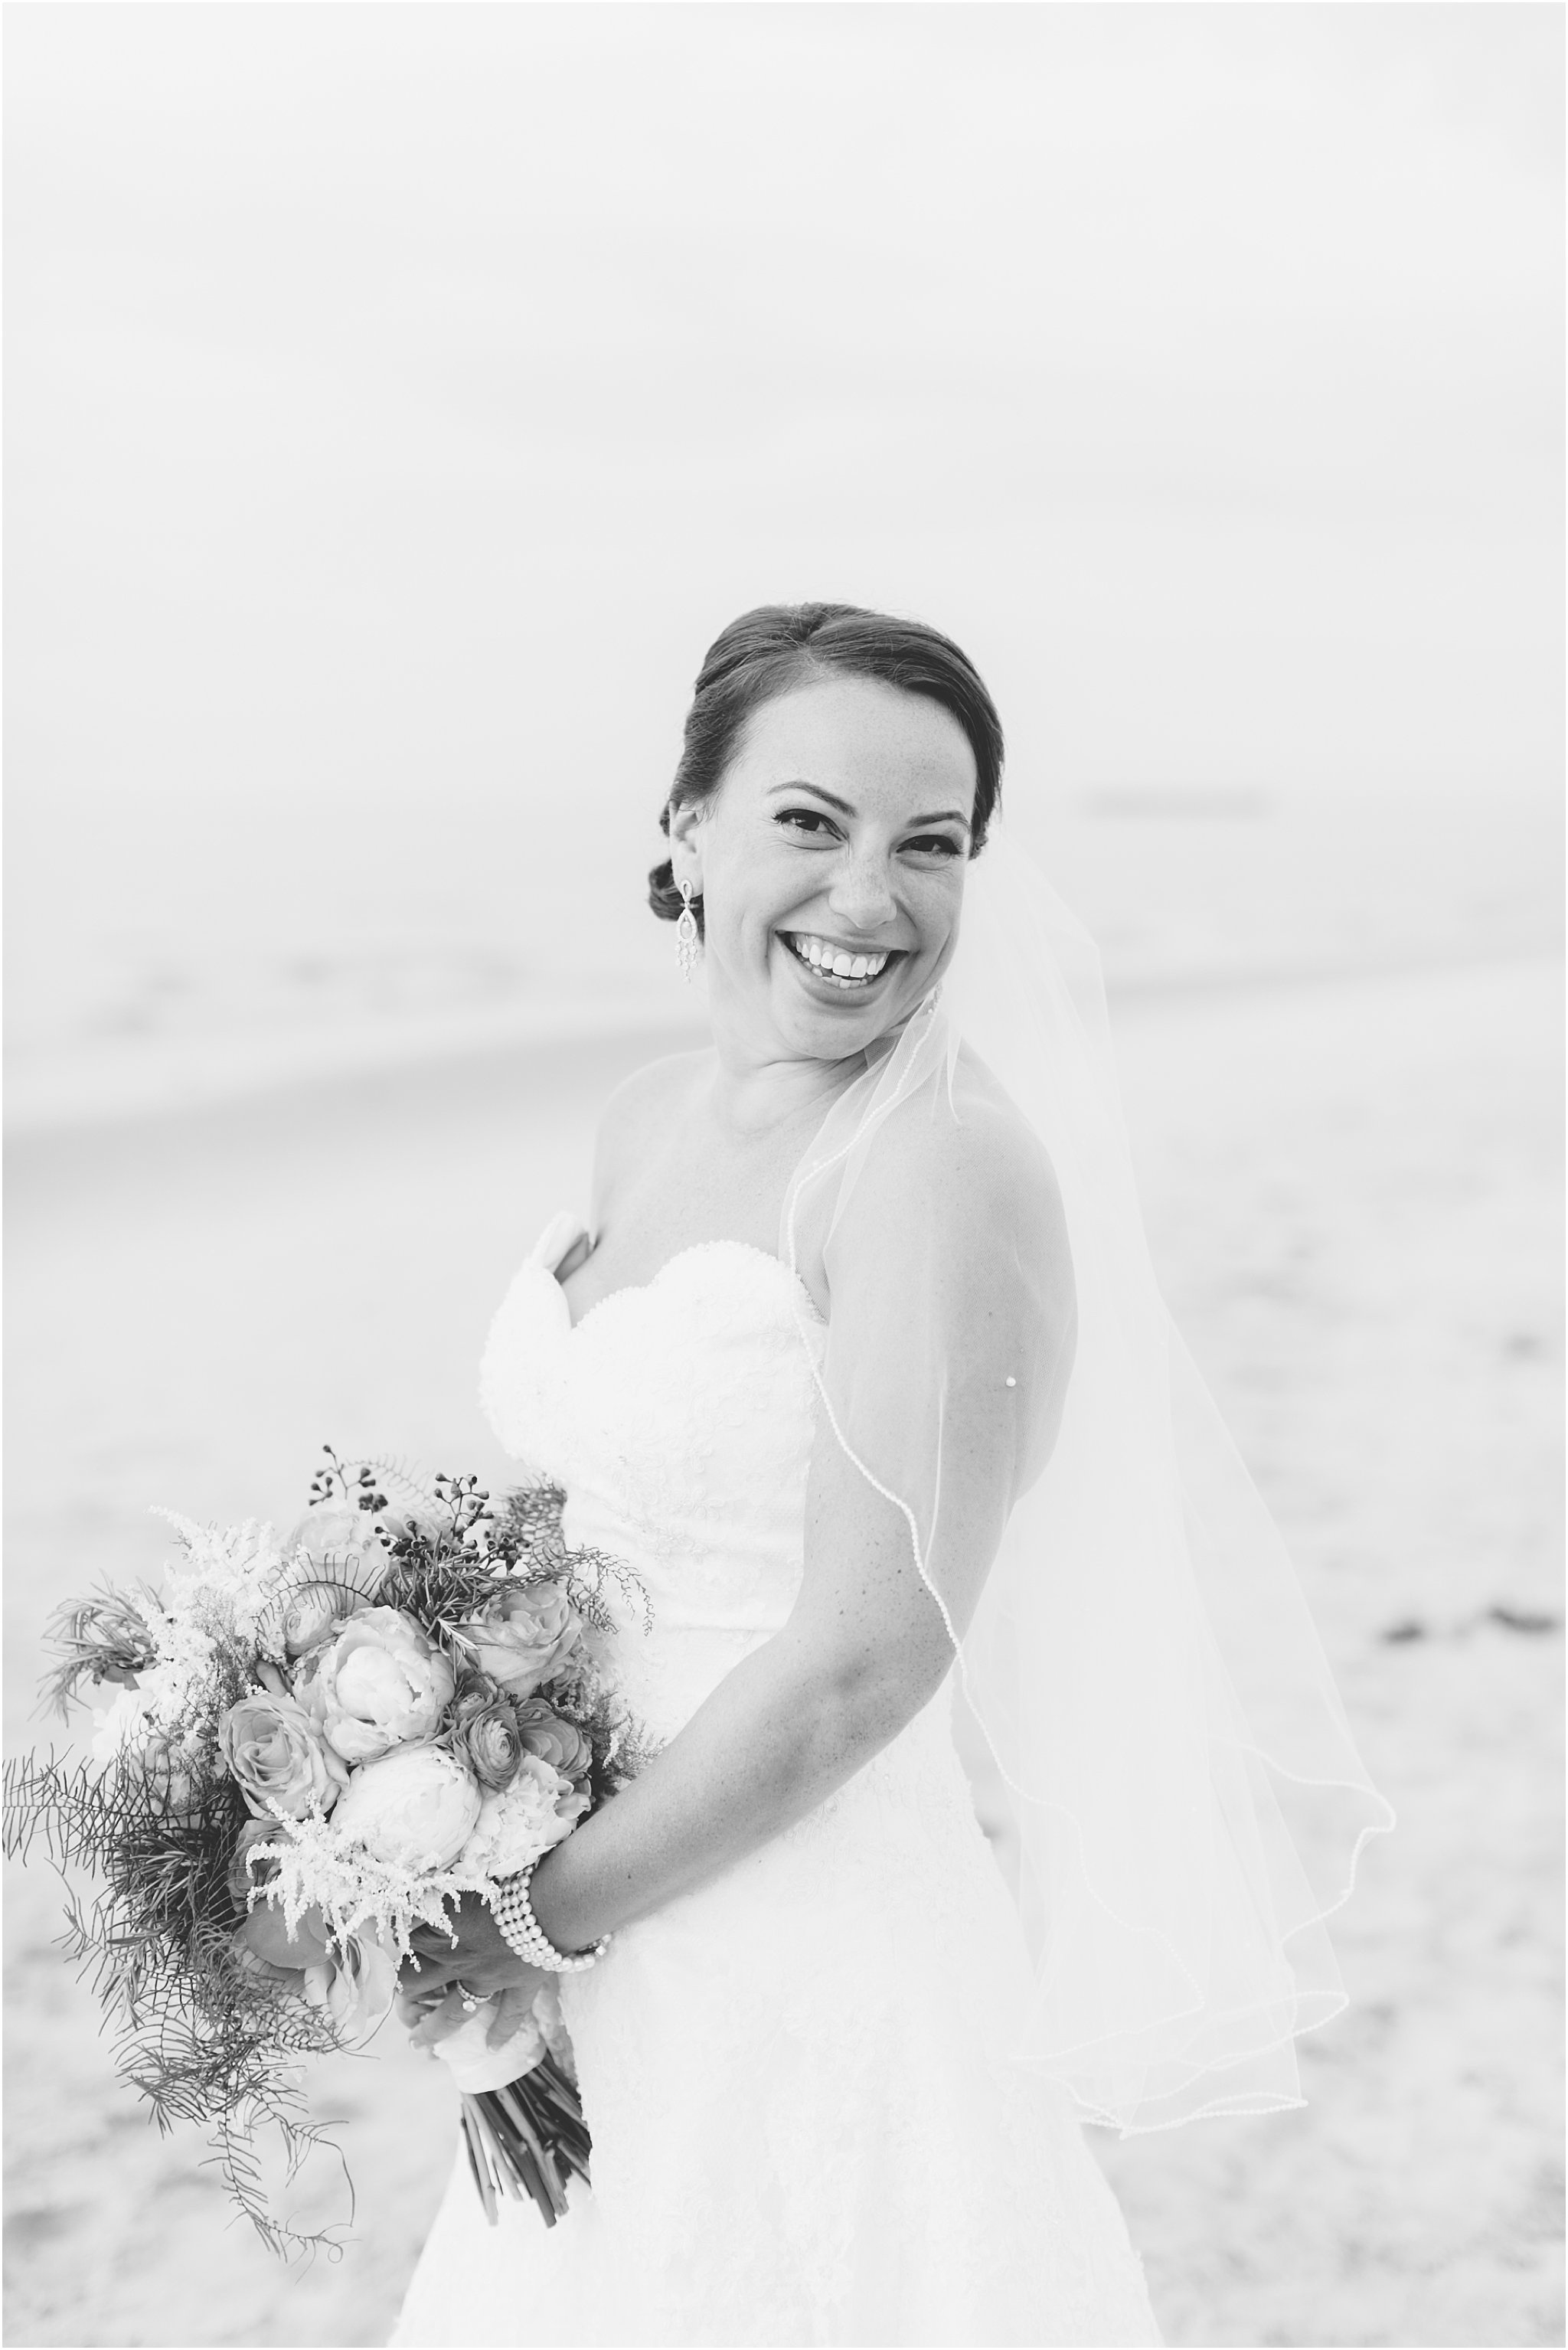 jessica_ryan_photography_wedding_photography_virginiabeach_virginia_candid_authentic_wedding_portraits_marina_shores_yacht_club_chesapeake_bay_1876